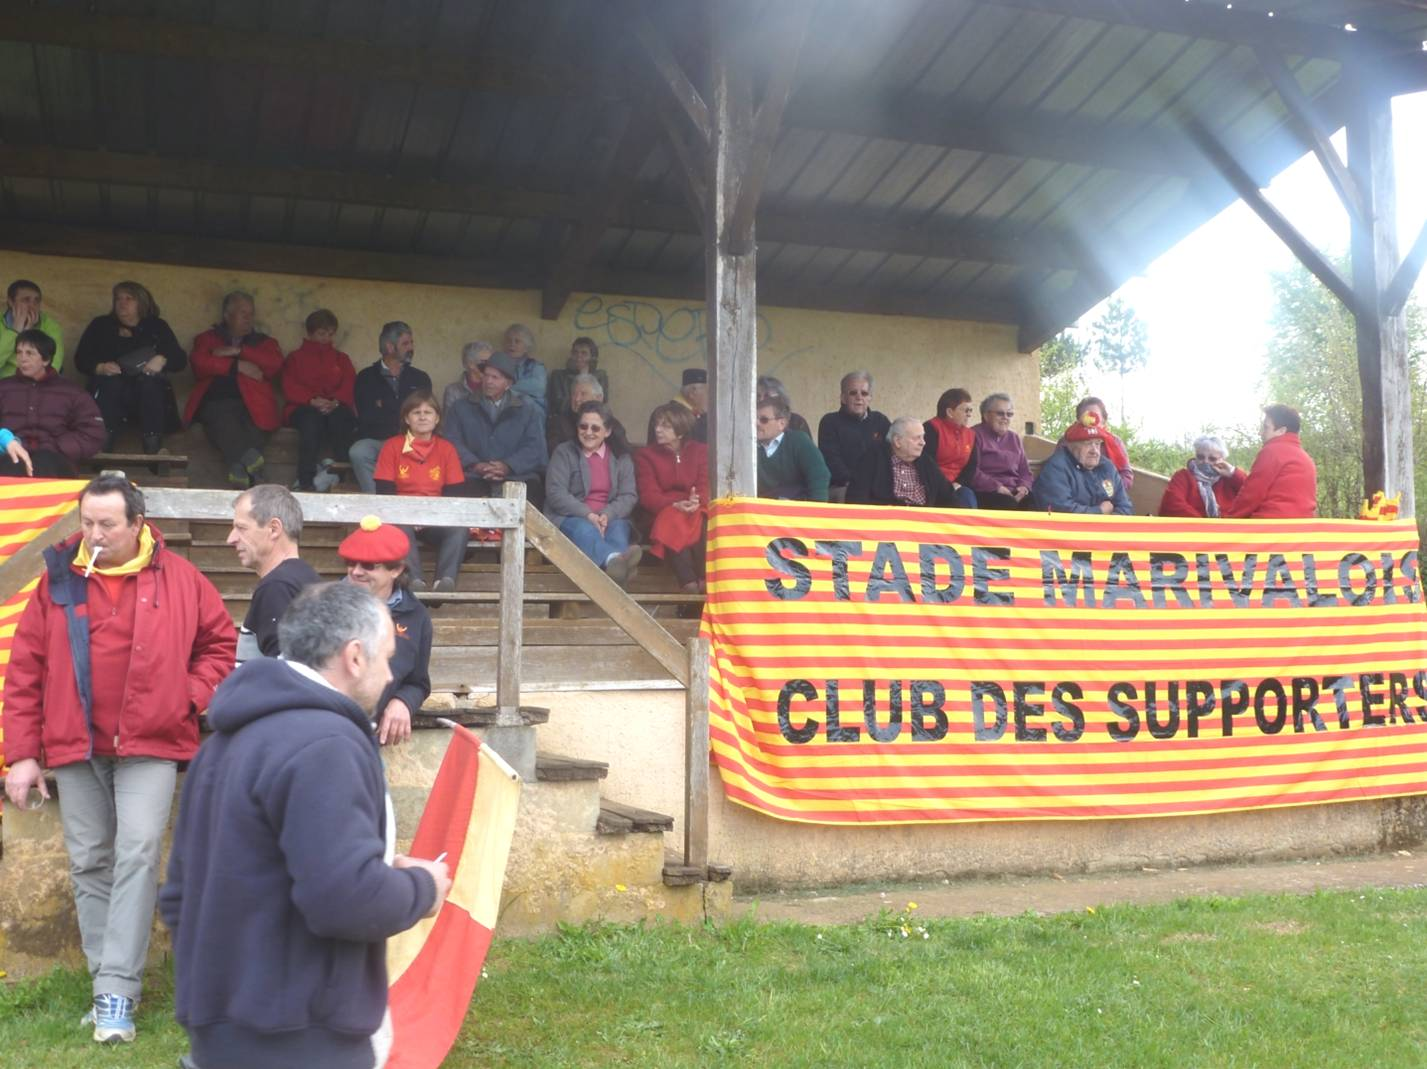 photo supporters stlm banderole tribunes